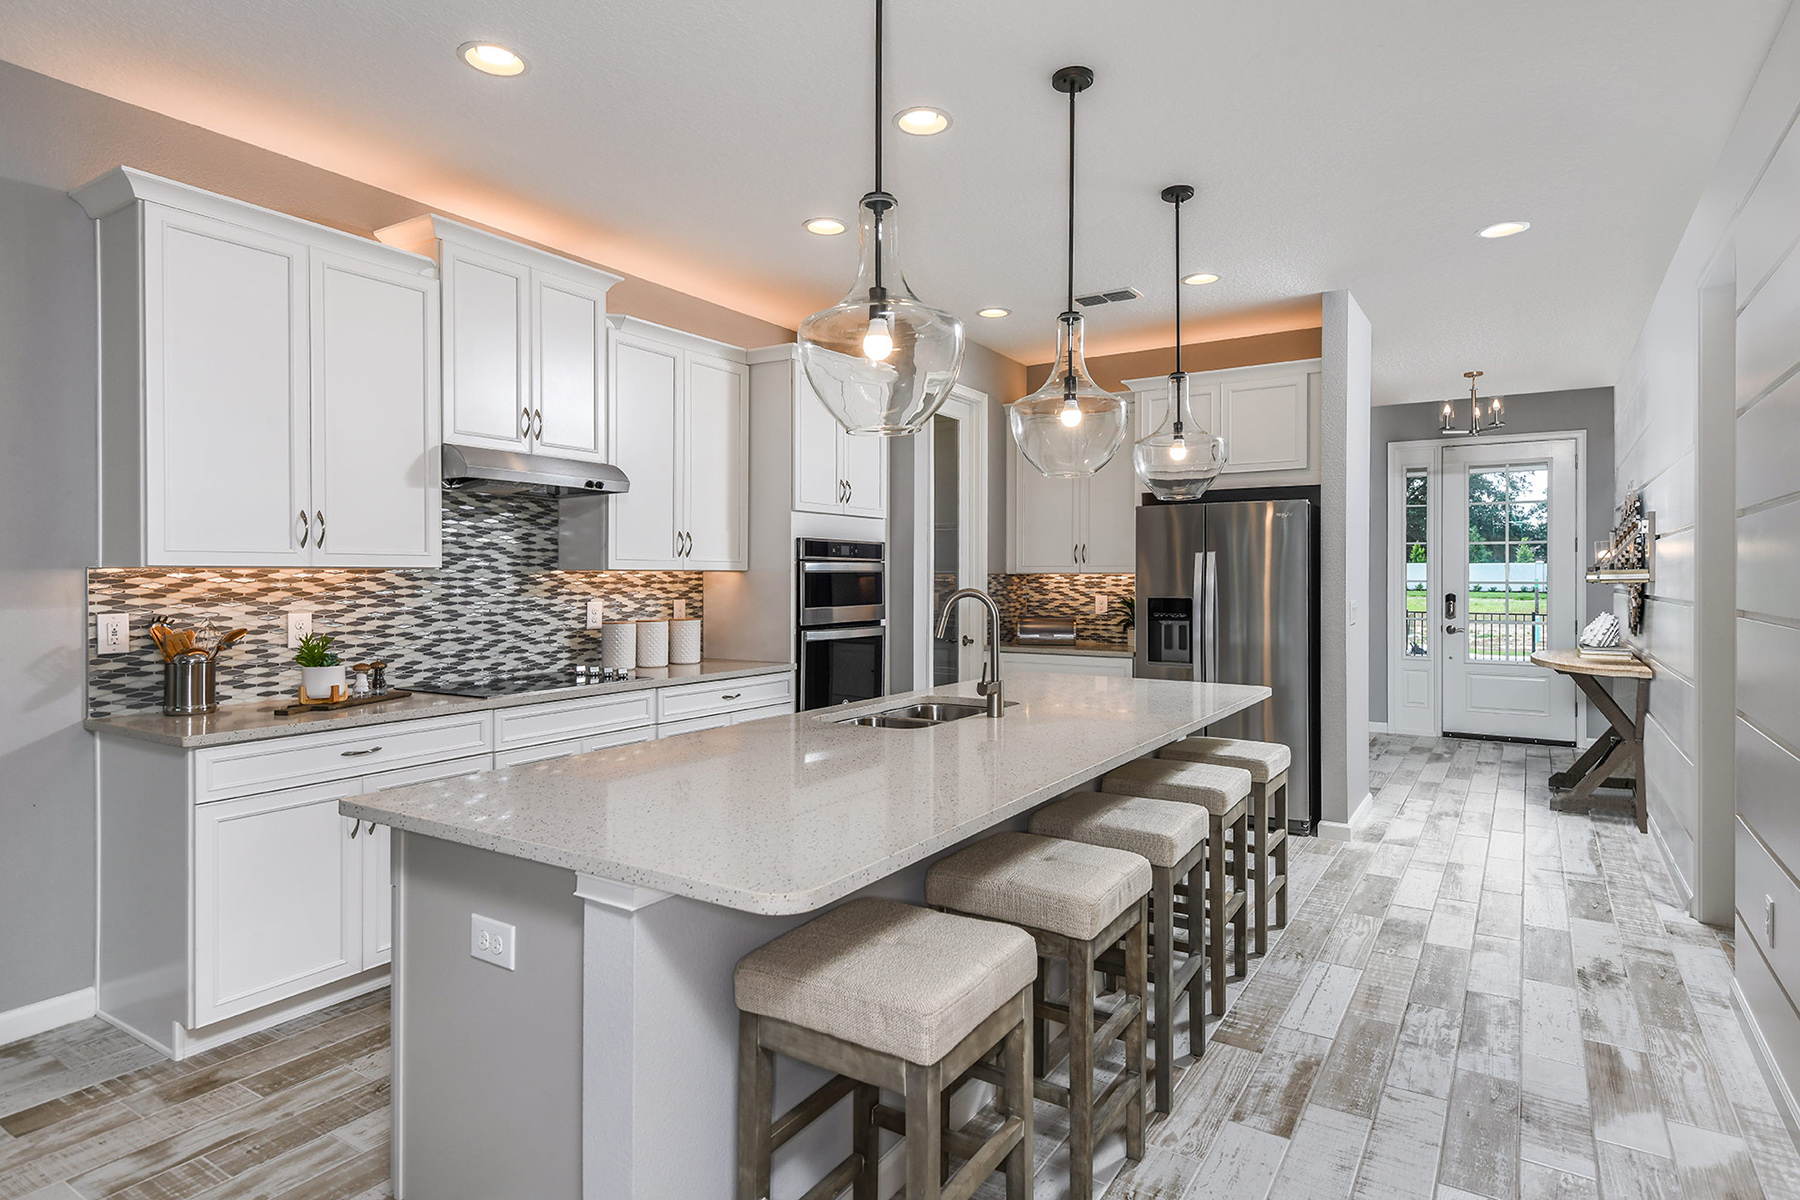 Coquina II Plan Kitchen at Wellen Park - Renaissance in Venice Florida by Mattamy Homes